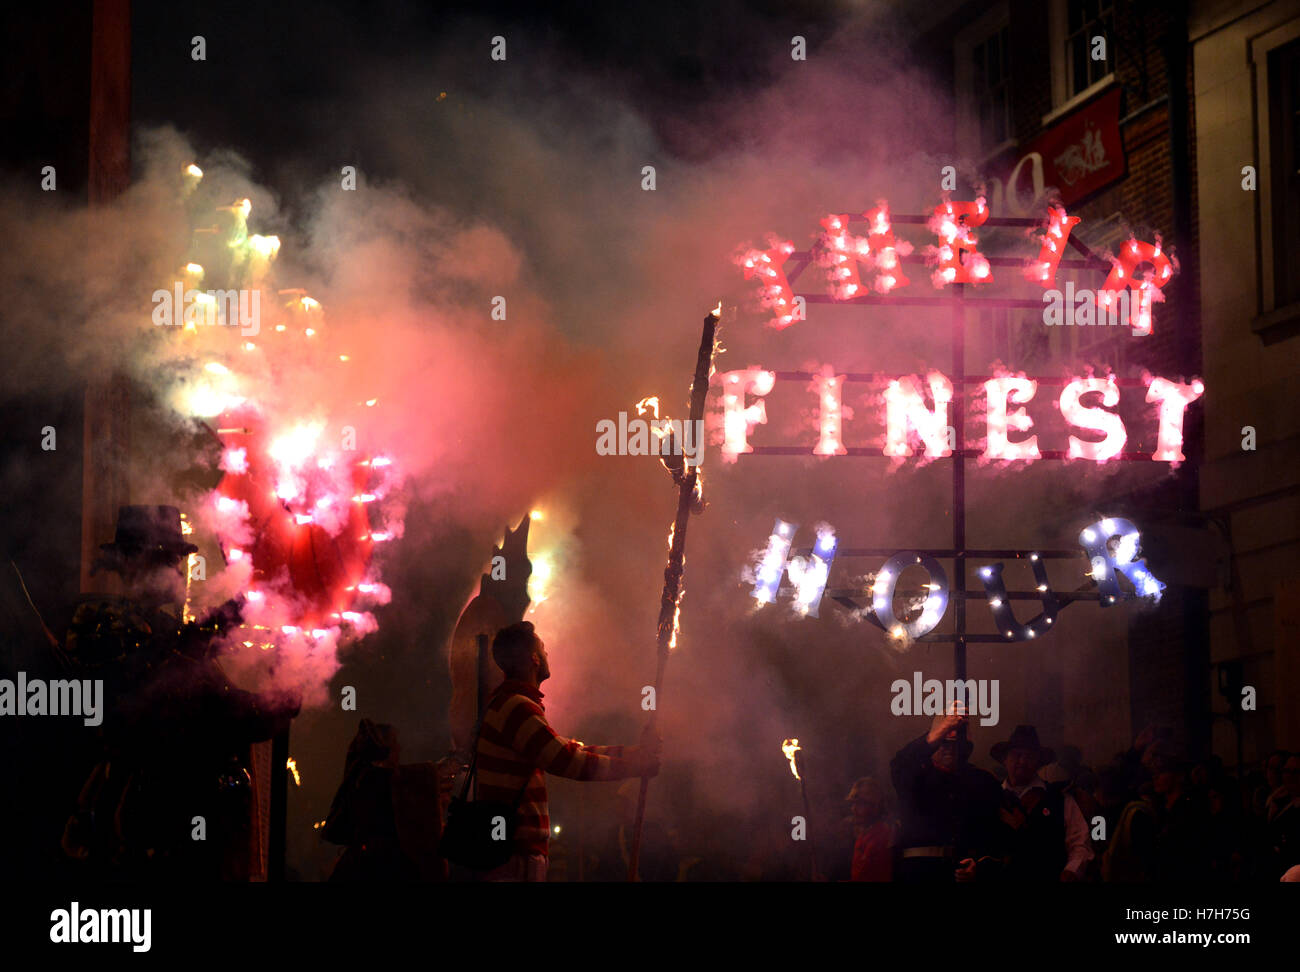 Lewes, East Sussex, UK. 5th November 2016. Lewes holds its infamous bonfire night celebrations. Credit:  Peter Cripps/Alamy - Stock Image